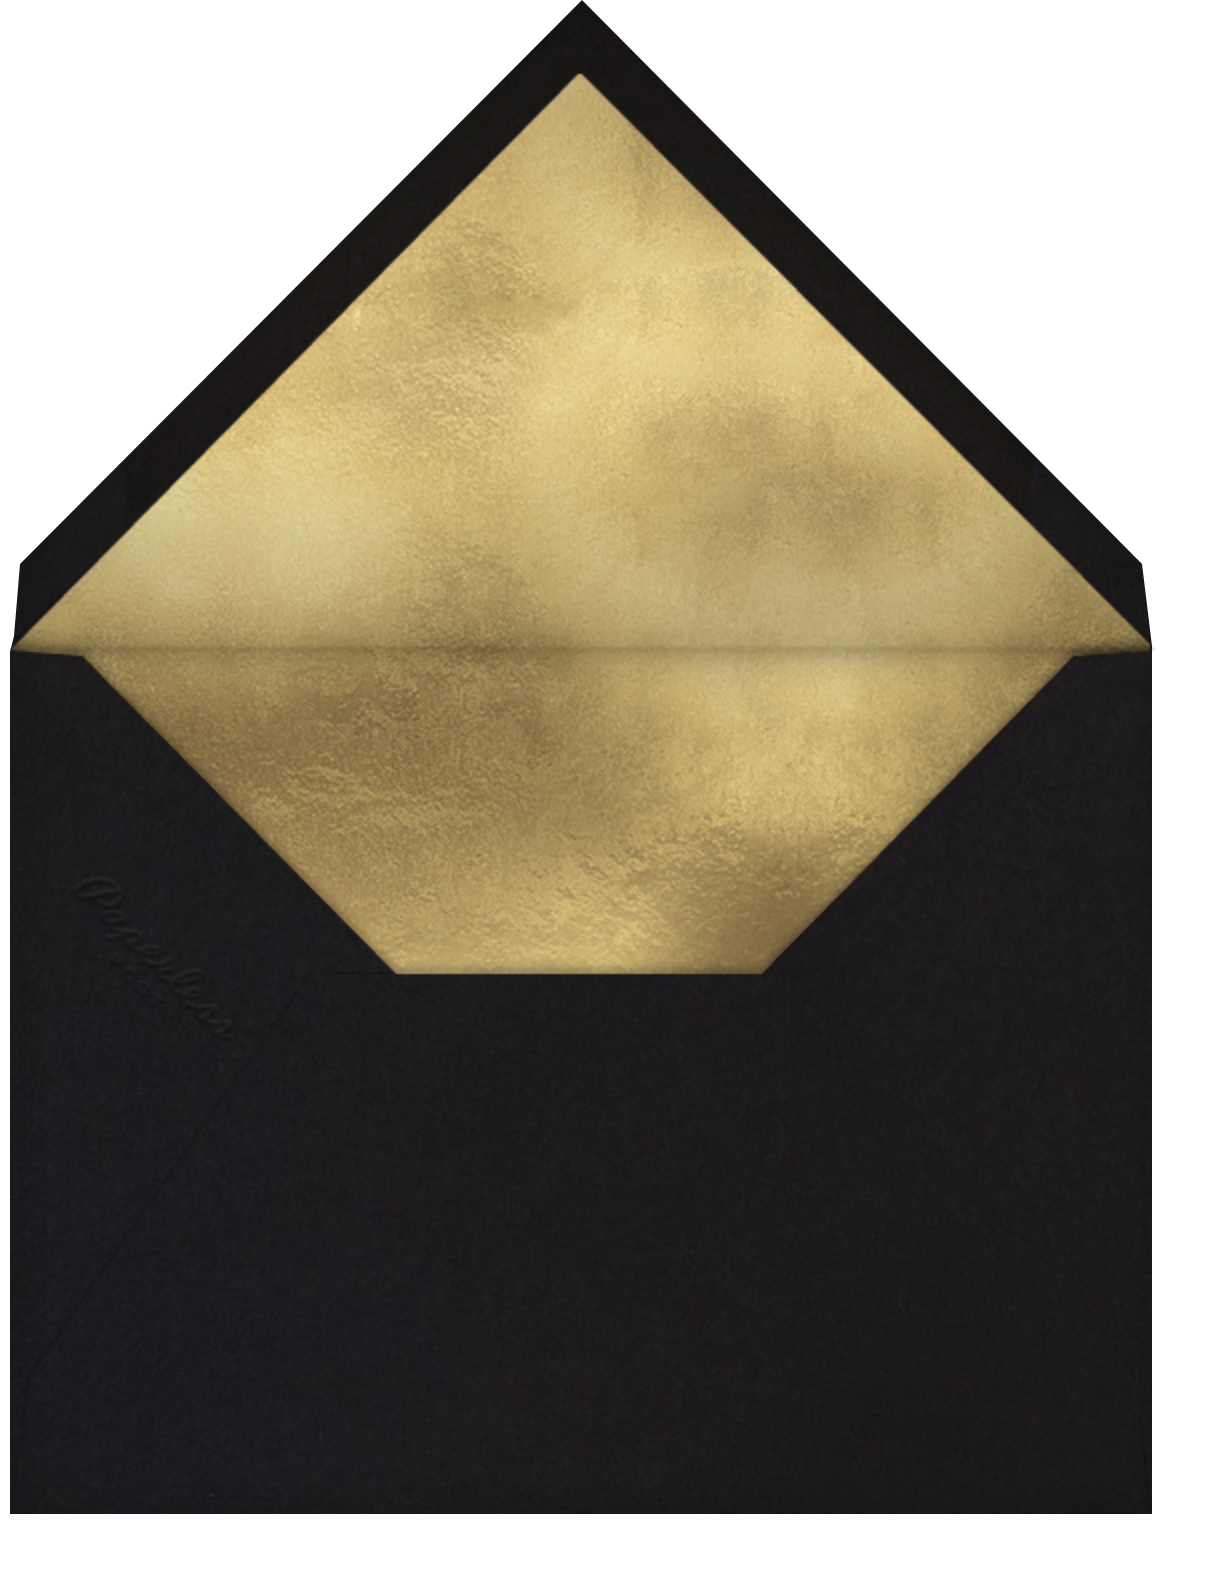 Royal Botanical - Black - Oscar de la Renta - Retirement party - envelope back